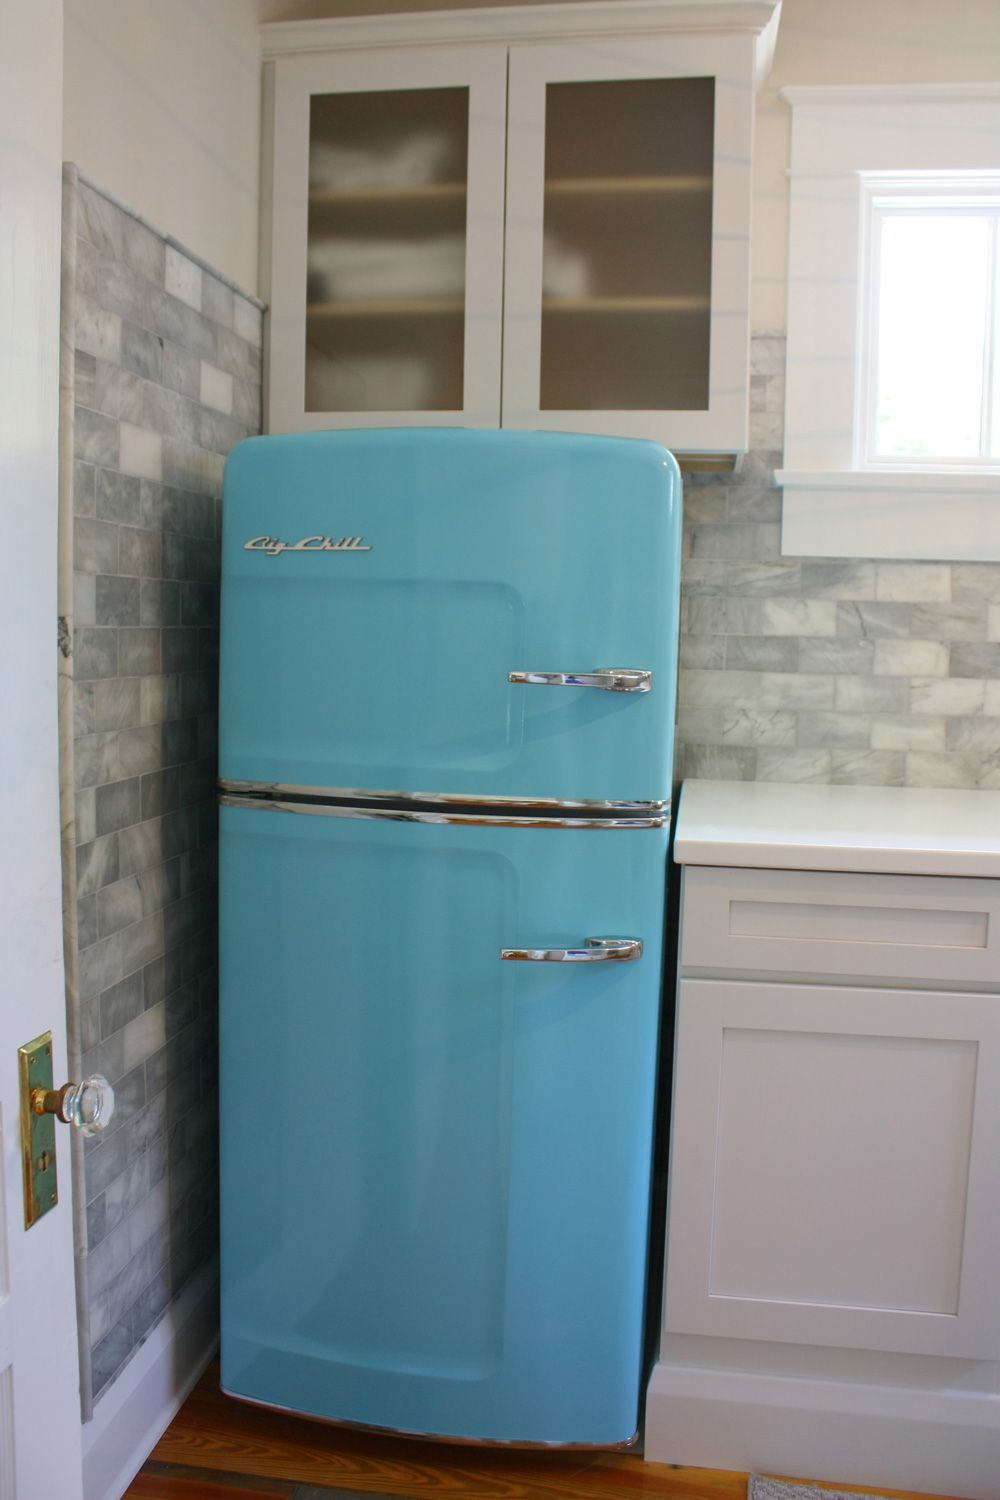 Studio Fridge | Tiny cottage ideas | Pinterest | Retro fridge, Big ...